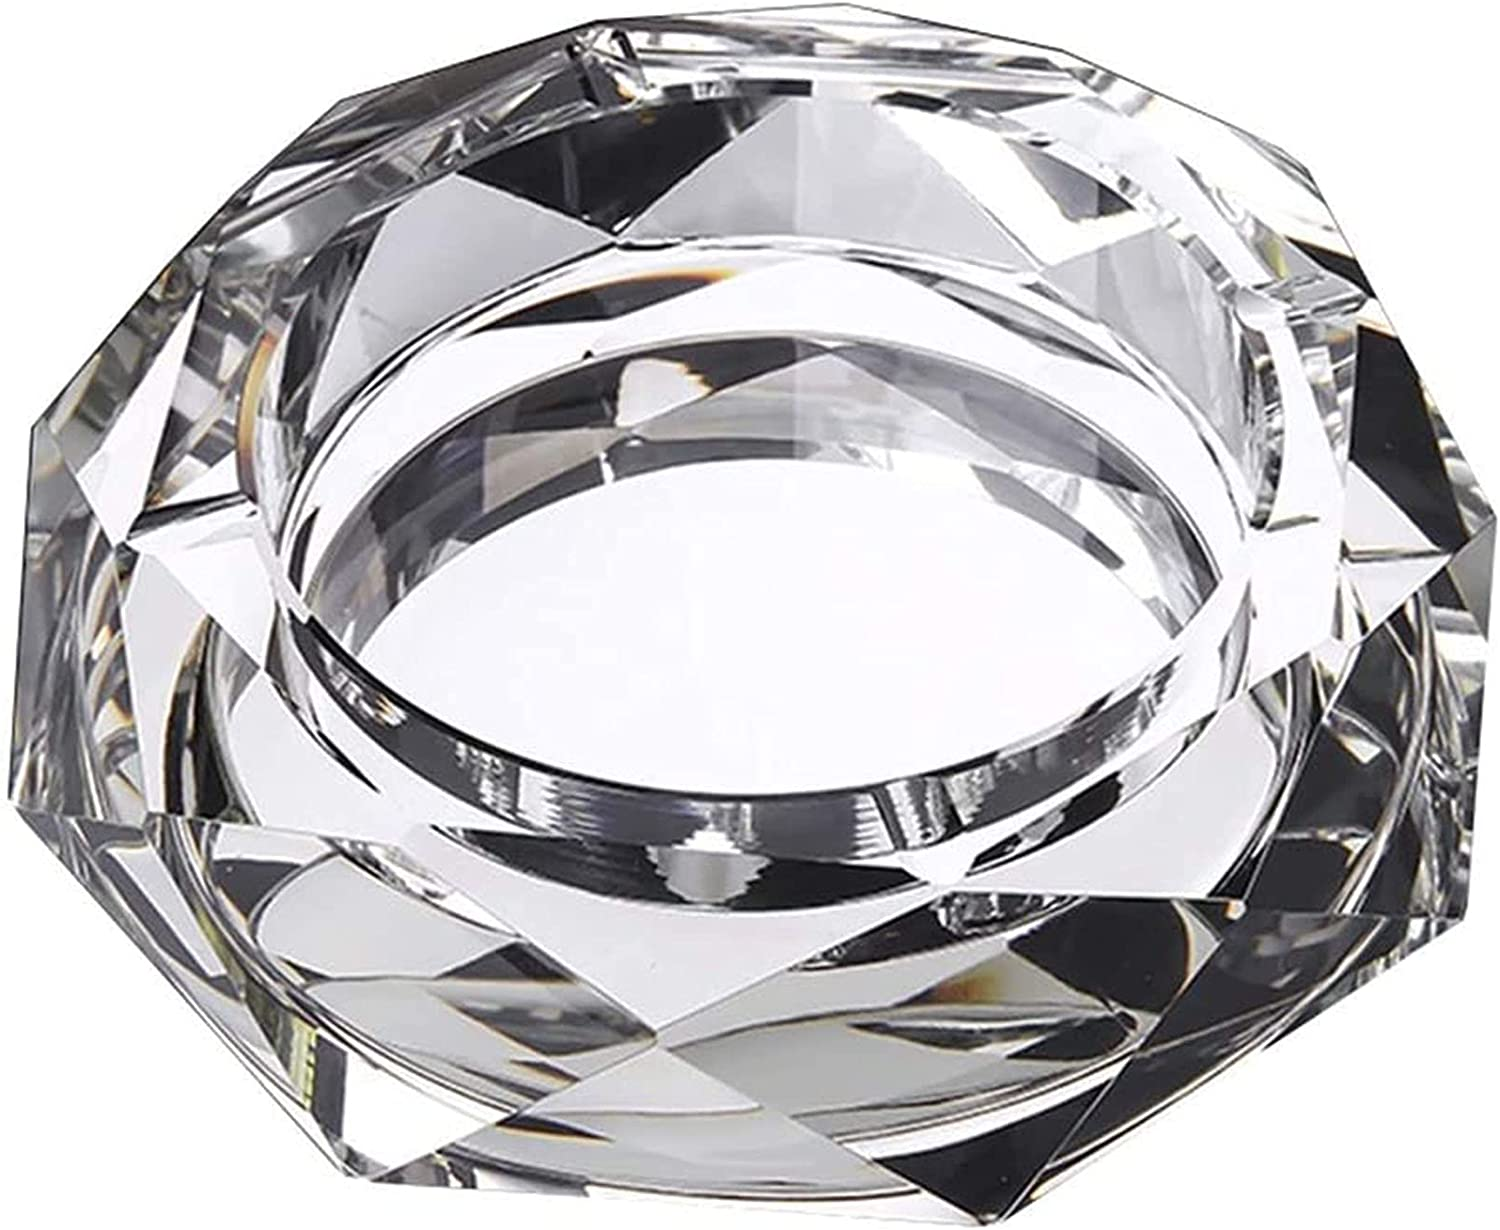 JXGXI Glass Ashtray Personality Trend Livi Multi-Function 5% Tampa Mall OFF Office